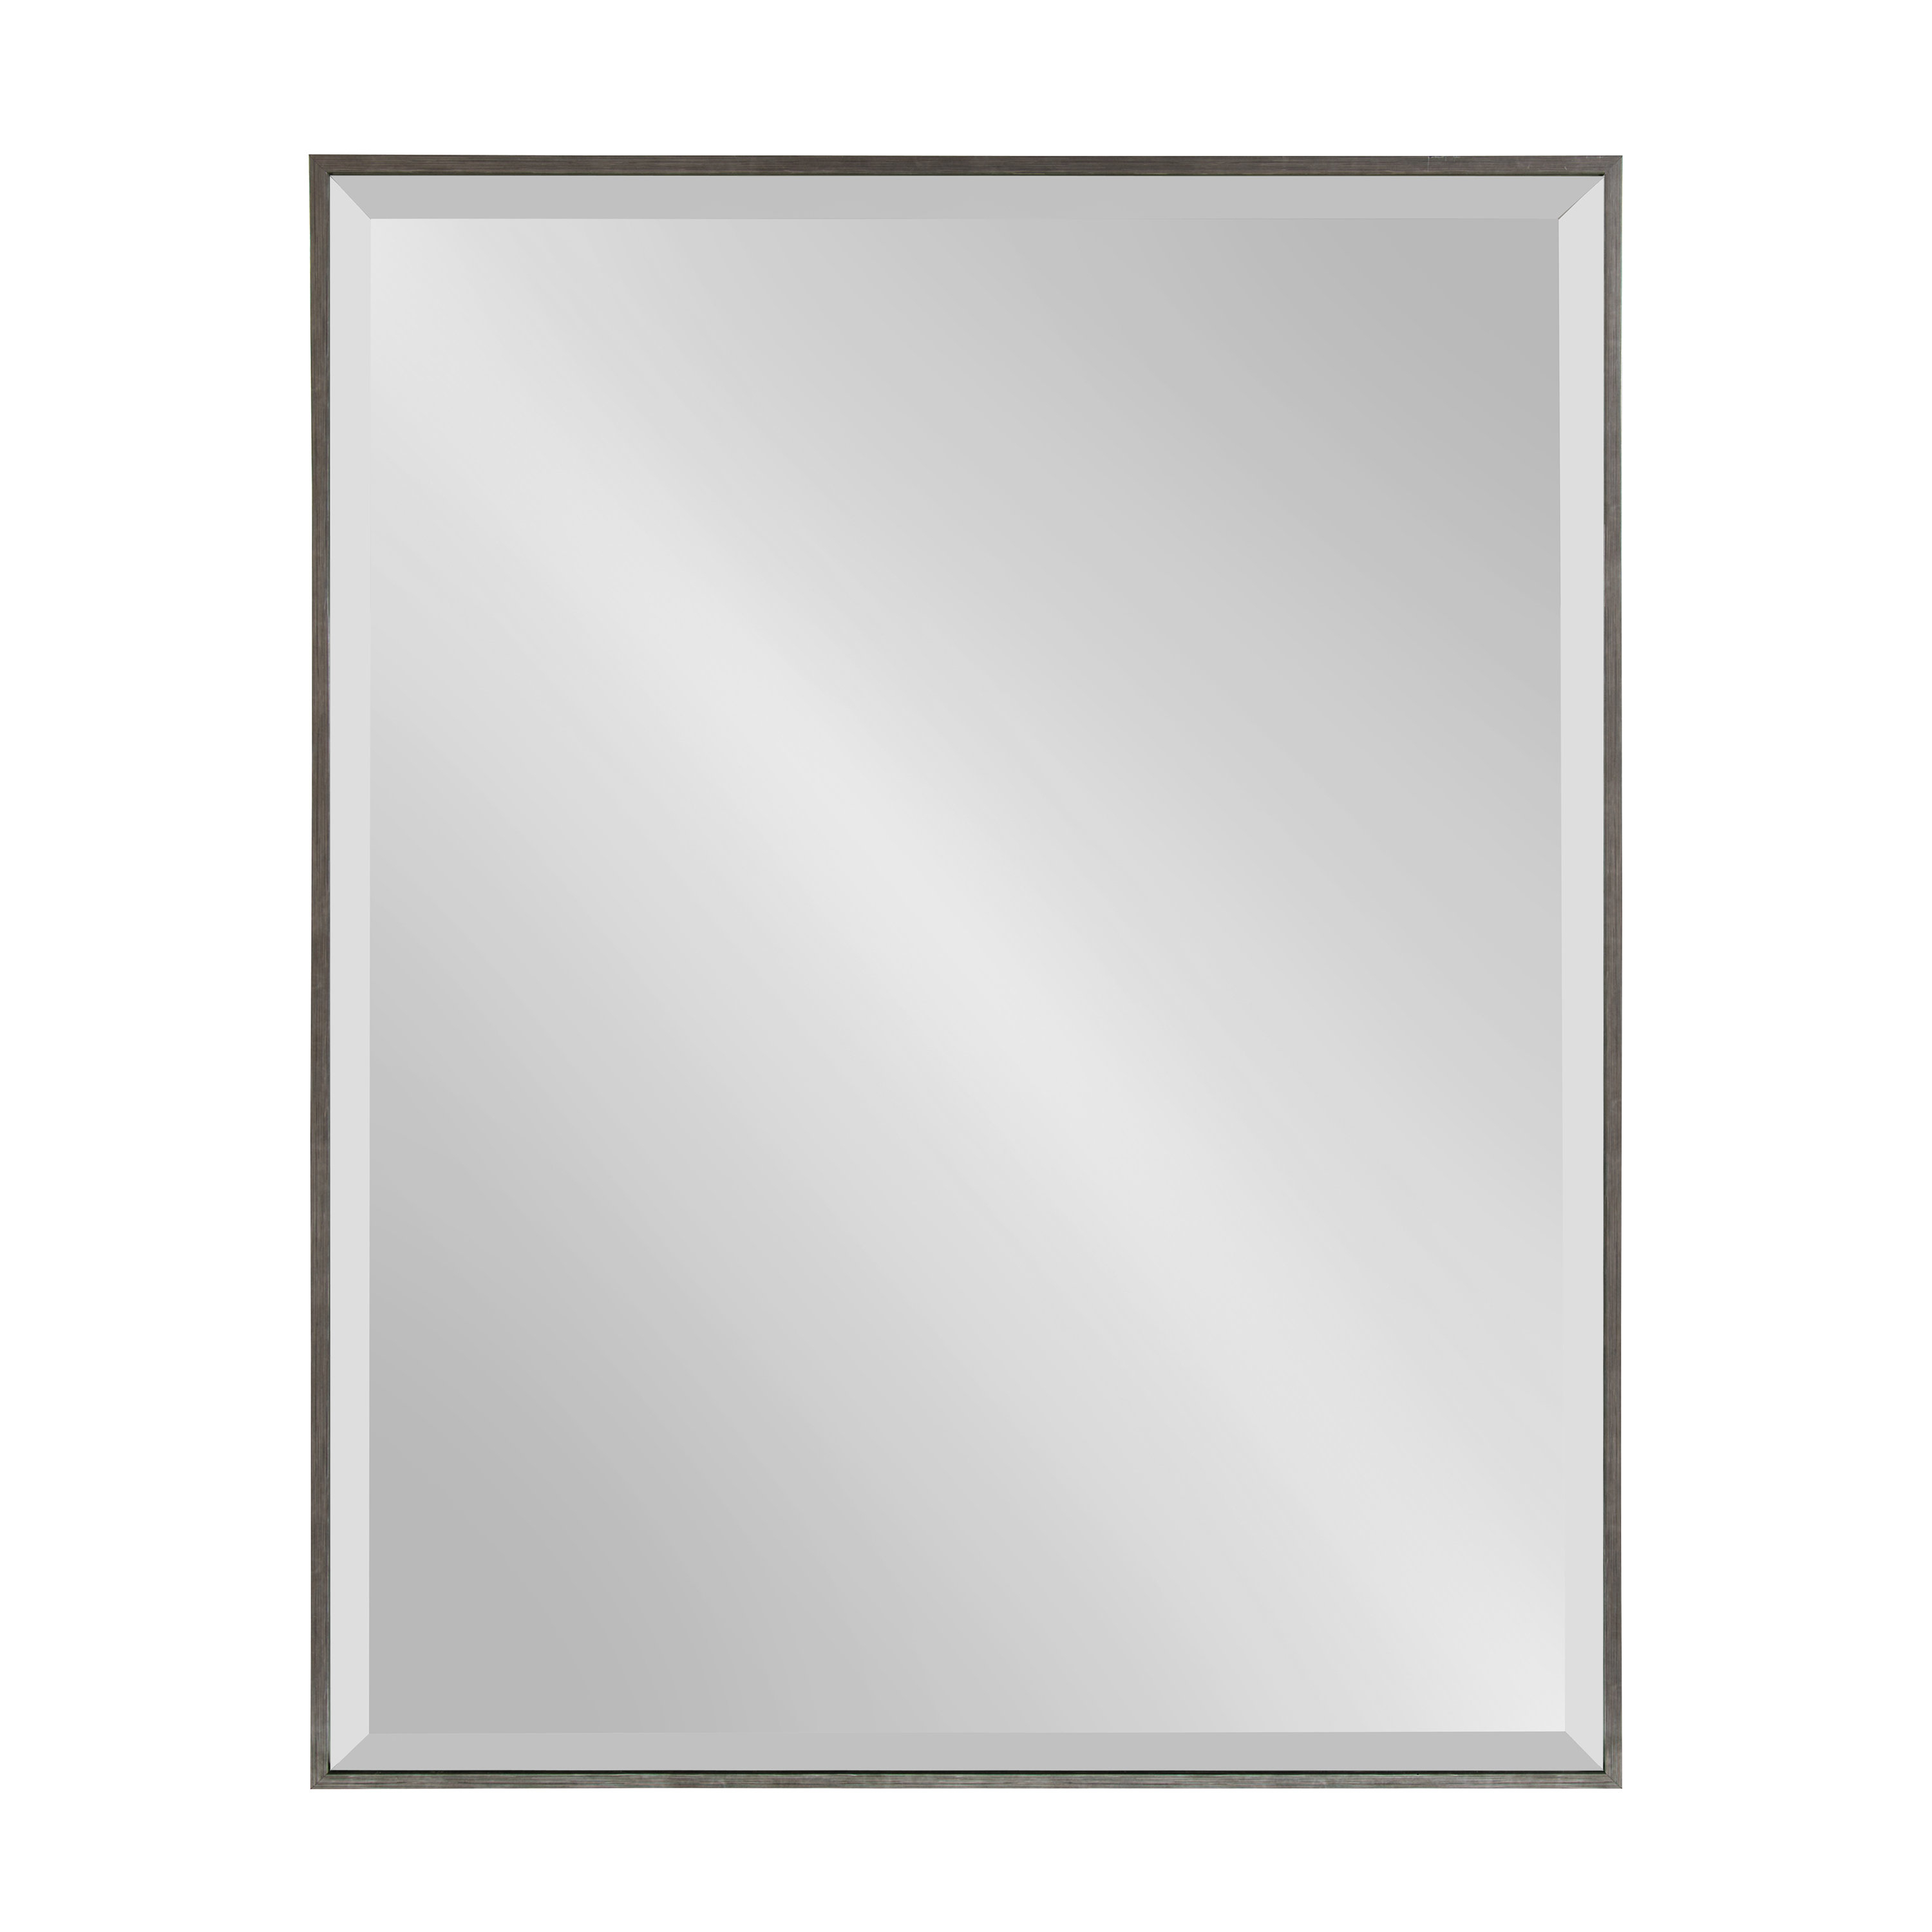 Traditional Beveled Accent Mirrors Intended For 2019 Logsdon Traditional Beveled Accent Mirror (View 5 of 20)